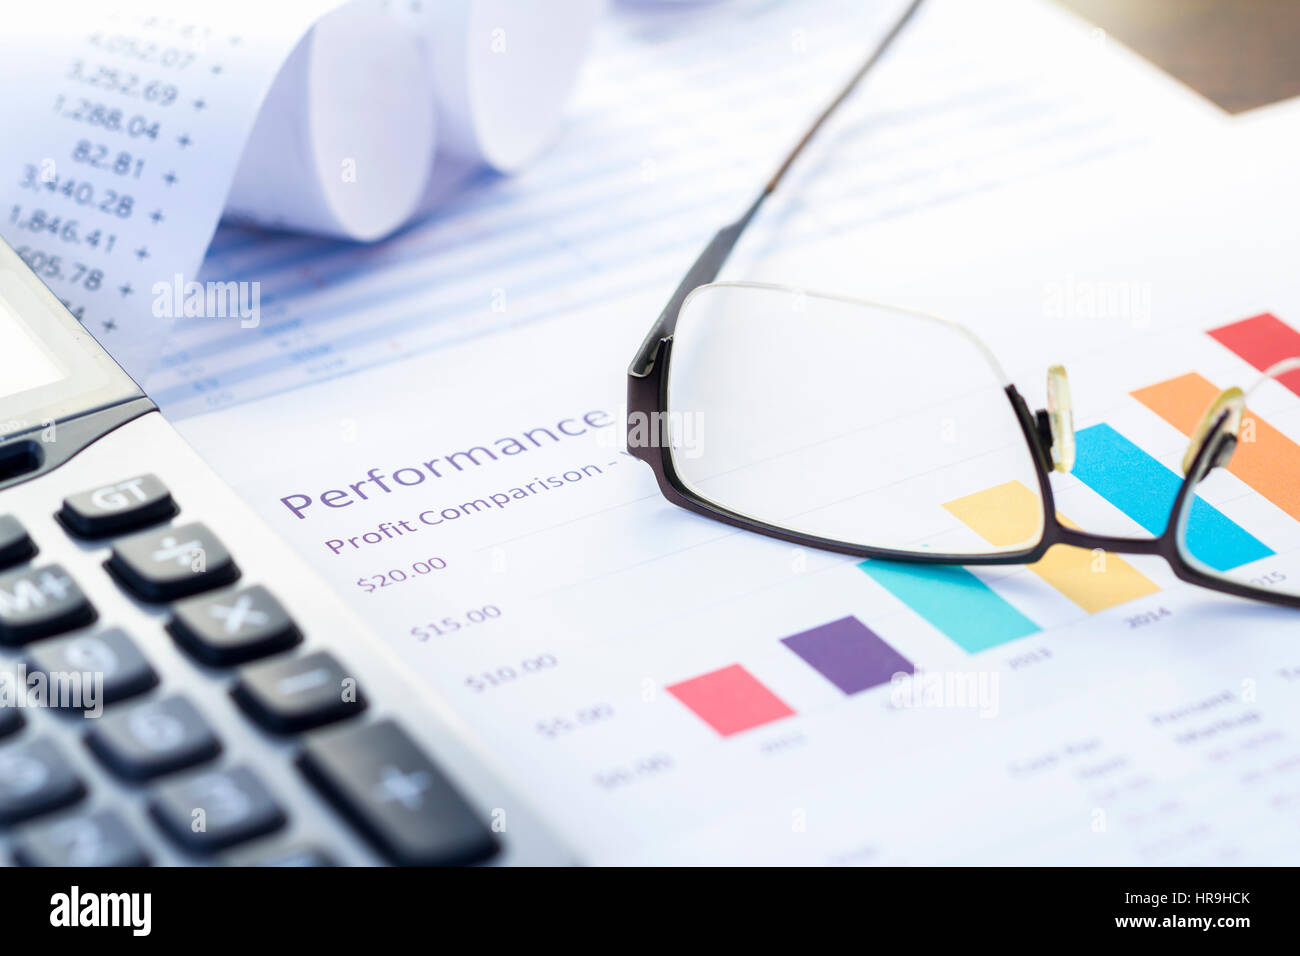 Business performance analysis with colorful bar graph and calculator business performance analysis with colorful bar graph and calculator ccuart Gallery